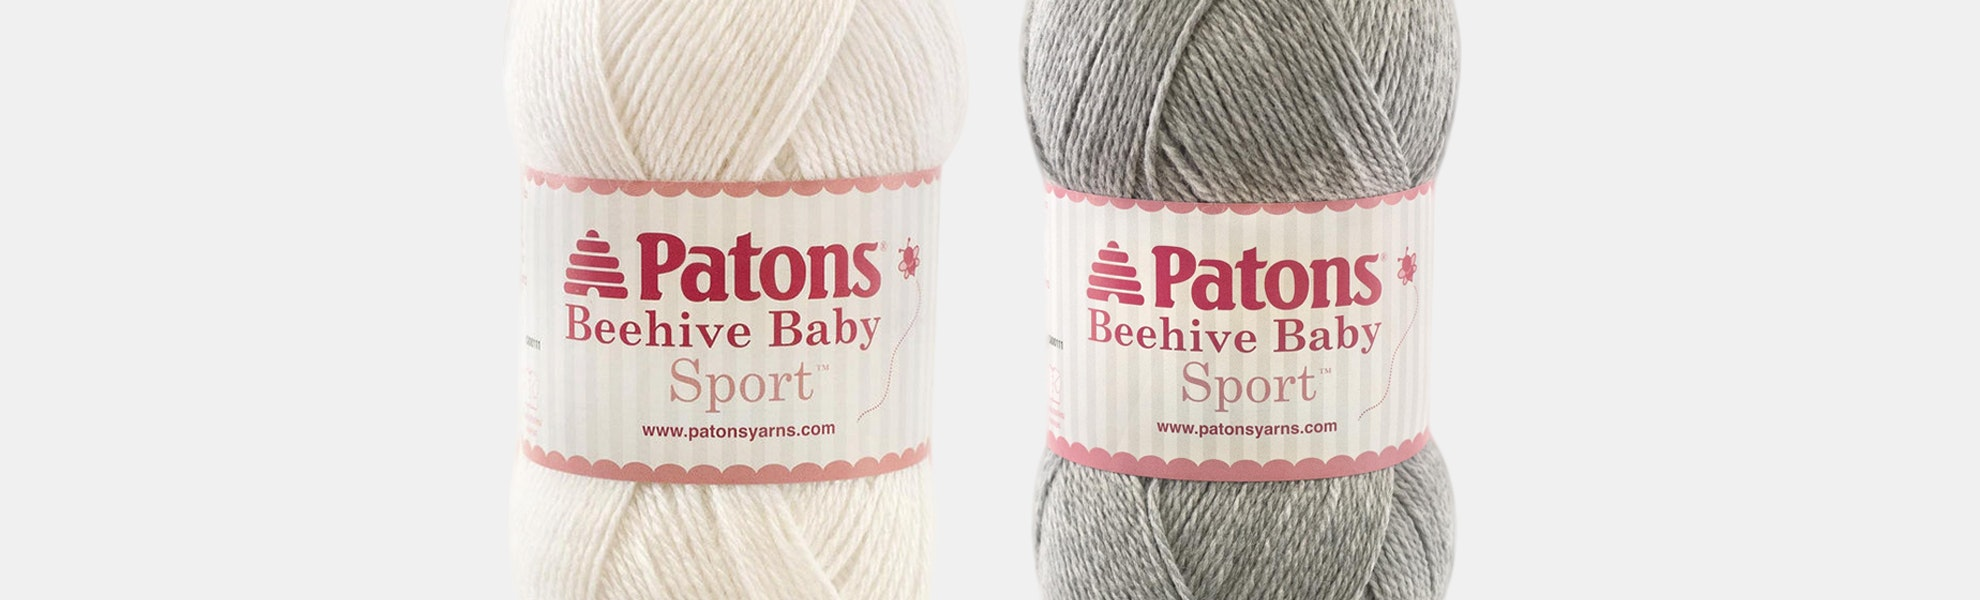 Beehive Baby Sport Yarn by Patons (2-Pack)